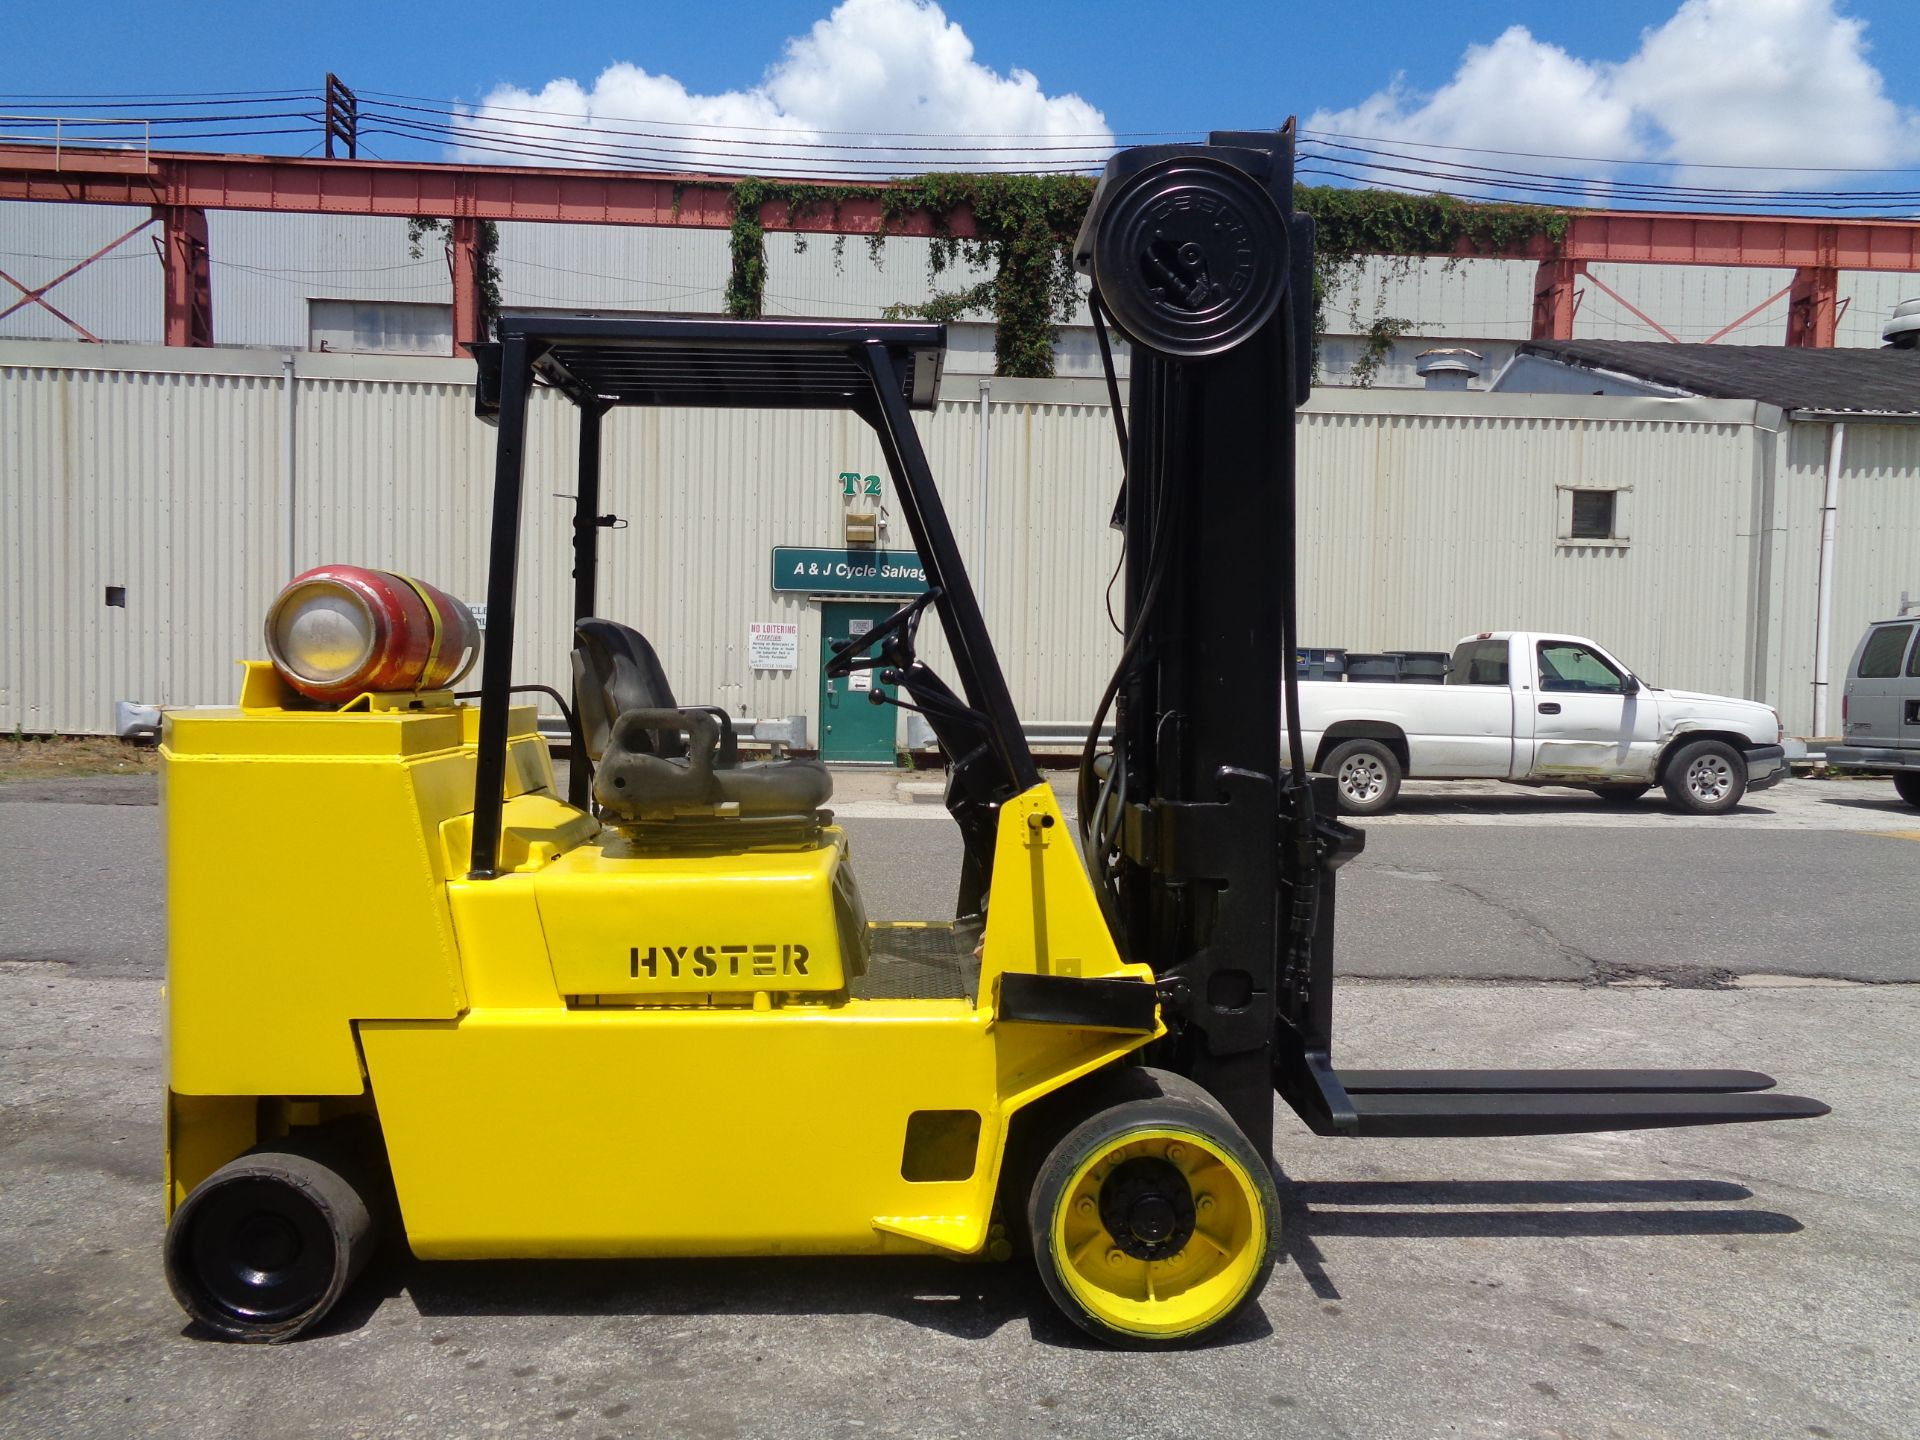 Hyster S120XL 12,000lb Forklift - Image 8 of 14